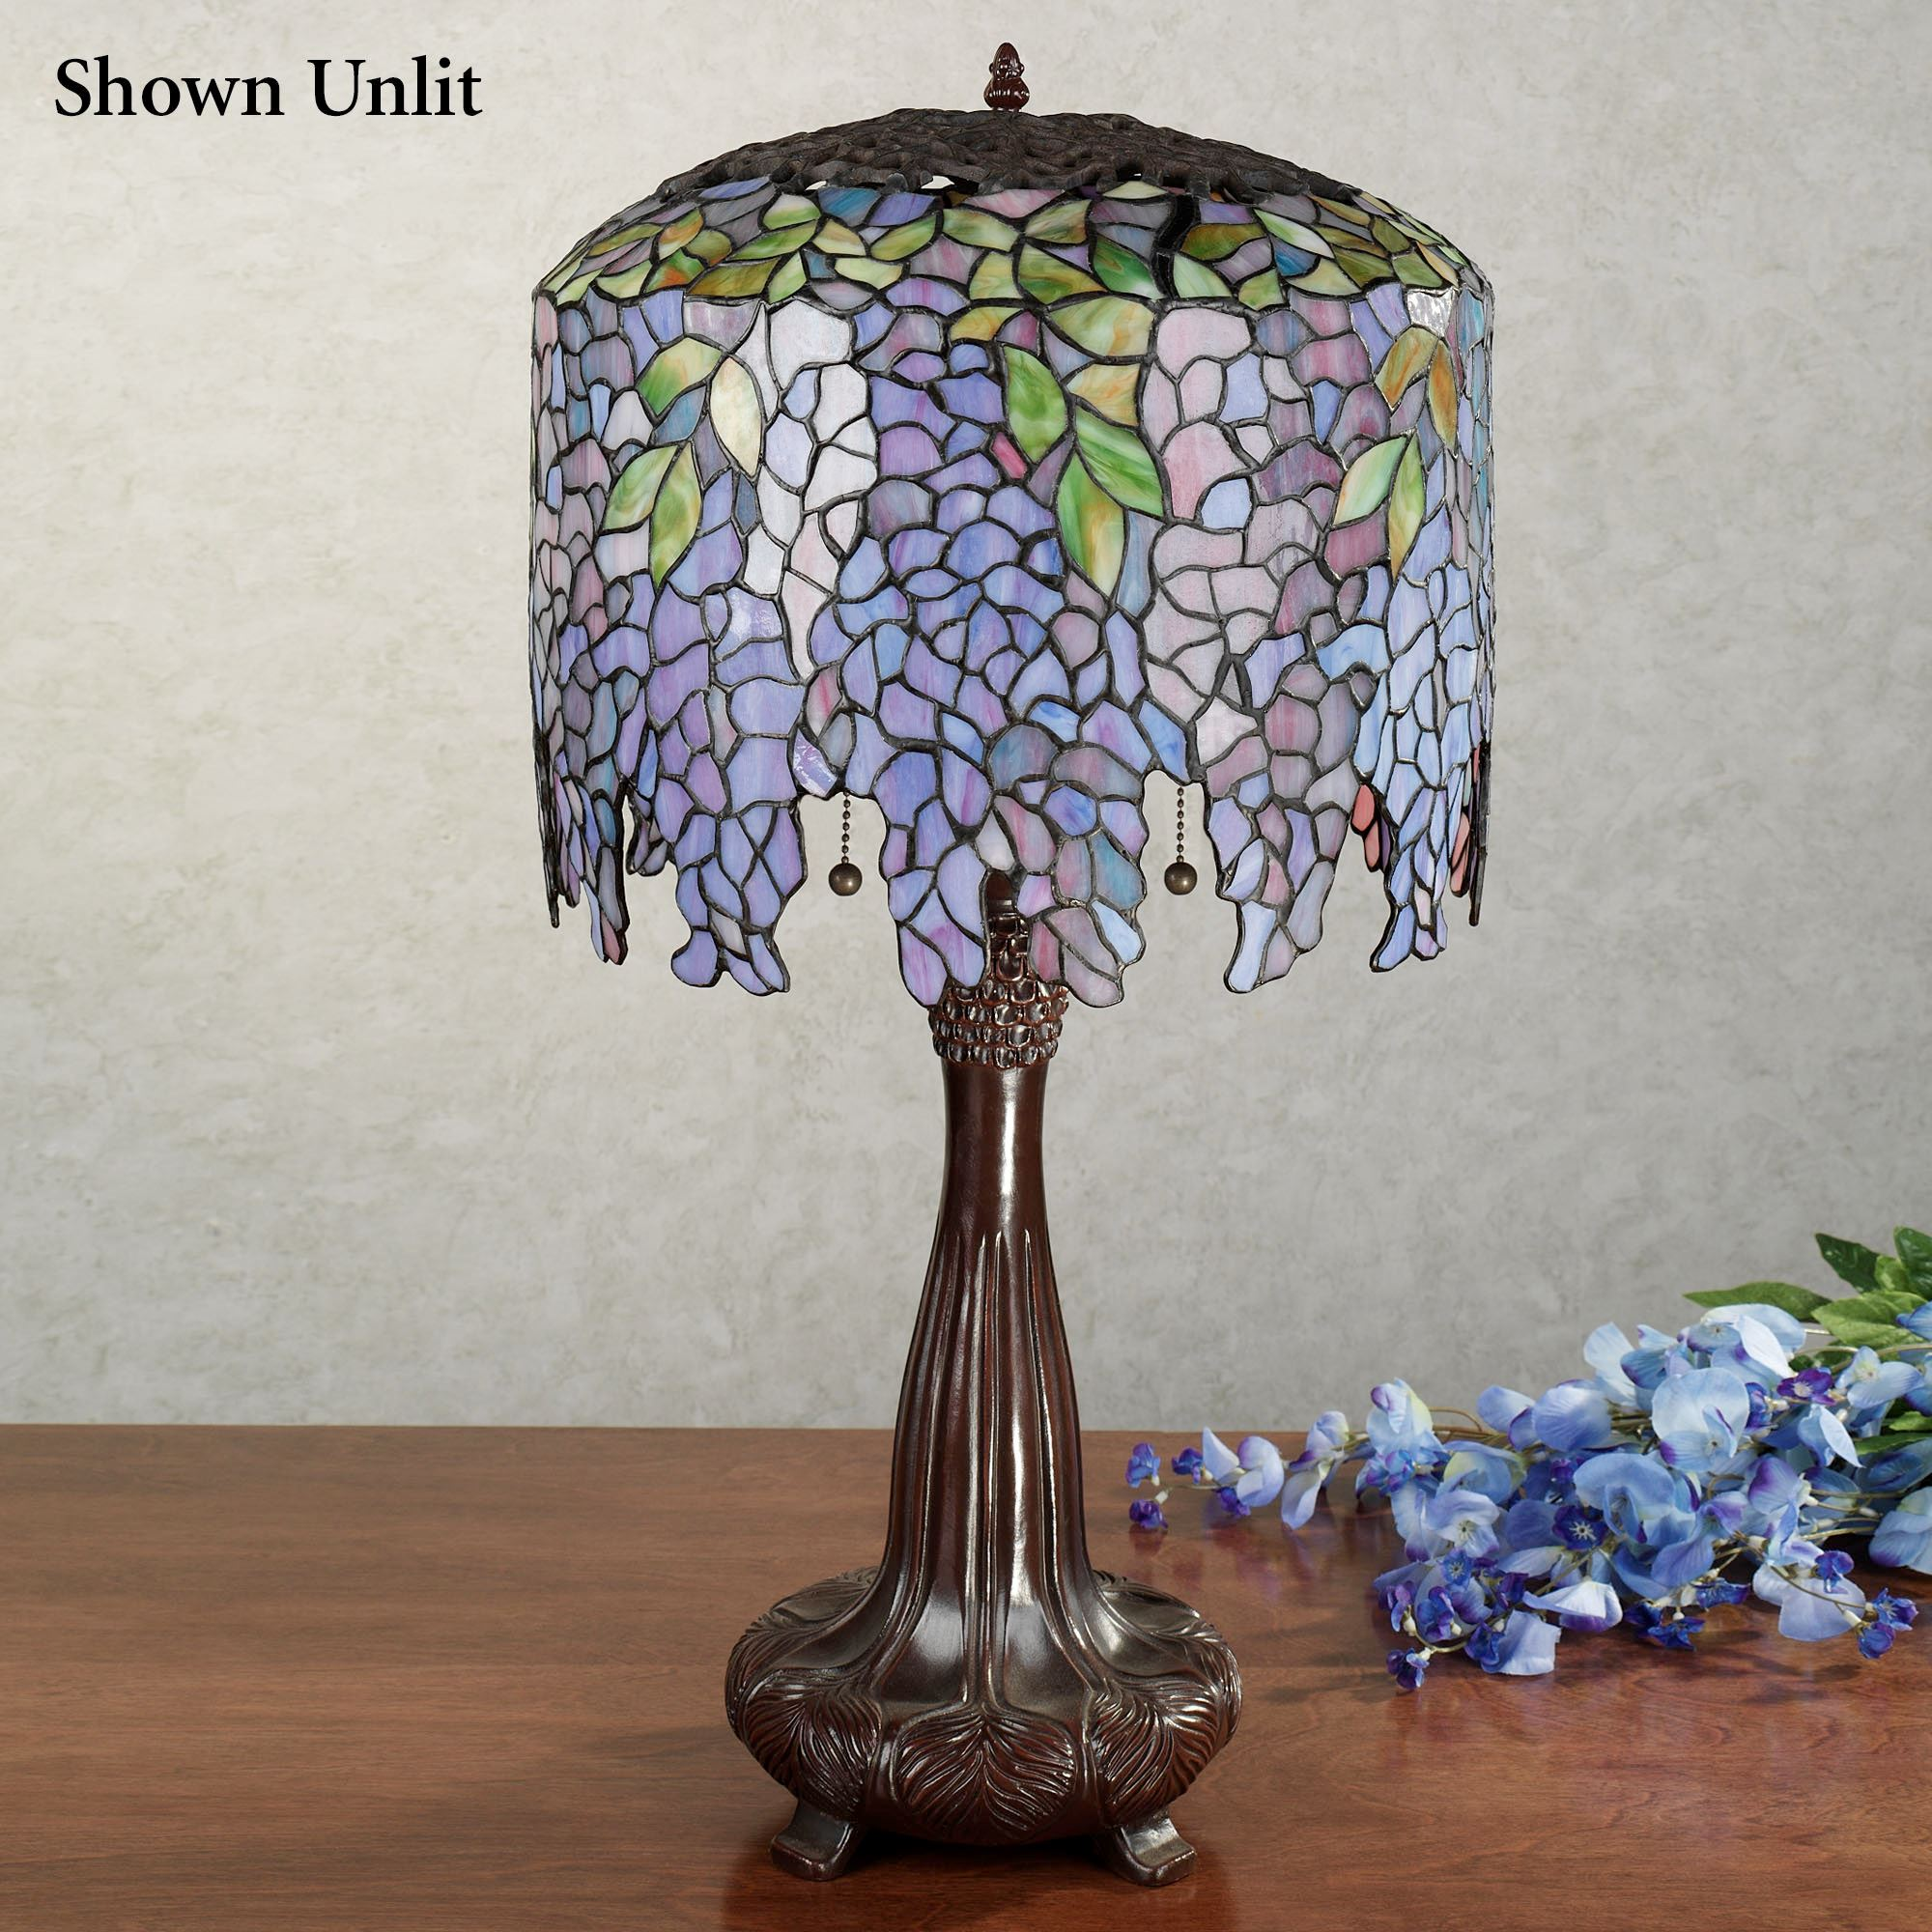 wisteria stained glass table lamp accent with cfl bulbs each bulb small round nesting tables outdoor wood patio furniture teal kitchen decor modern linens tory burch pearl